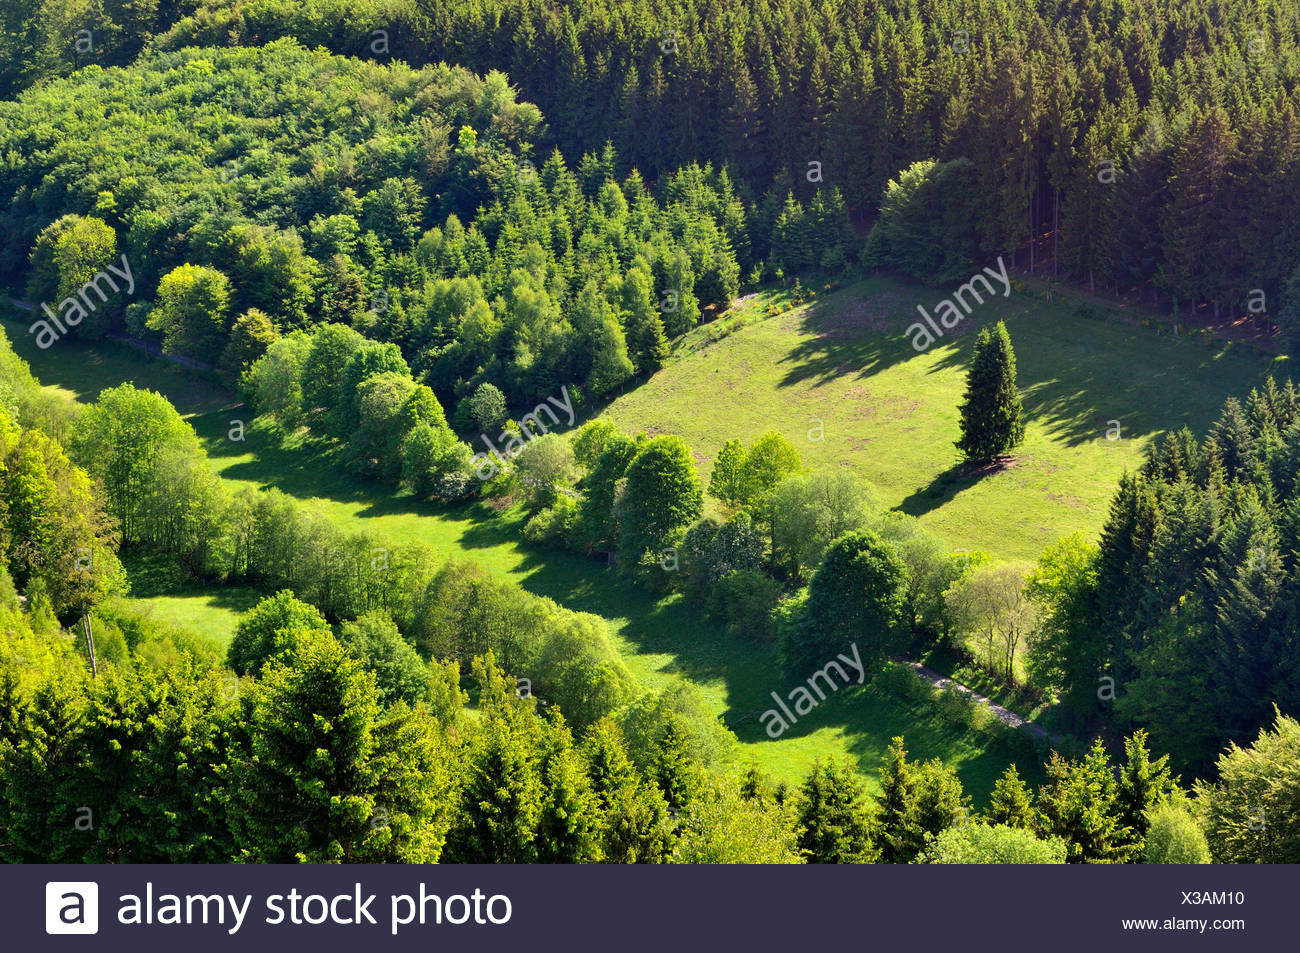 view of a mixed forest and cultural landscapes, Germany - Stock Image